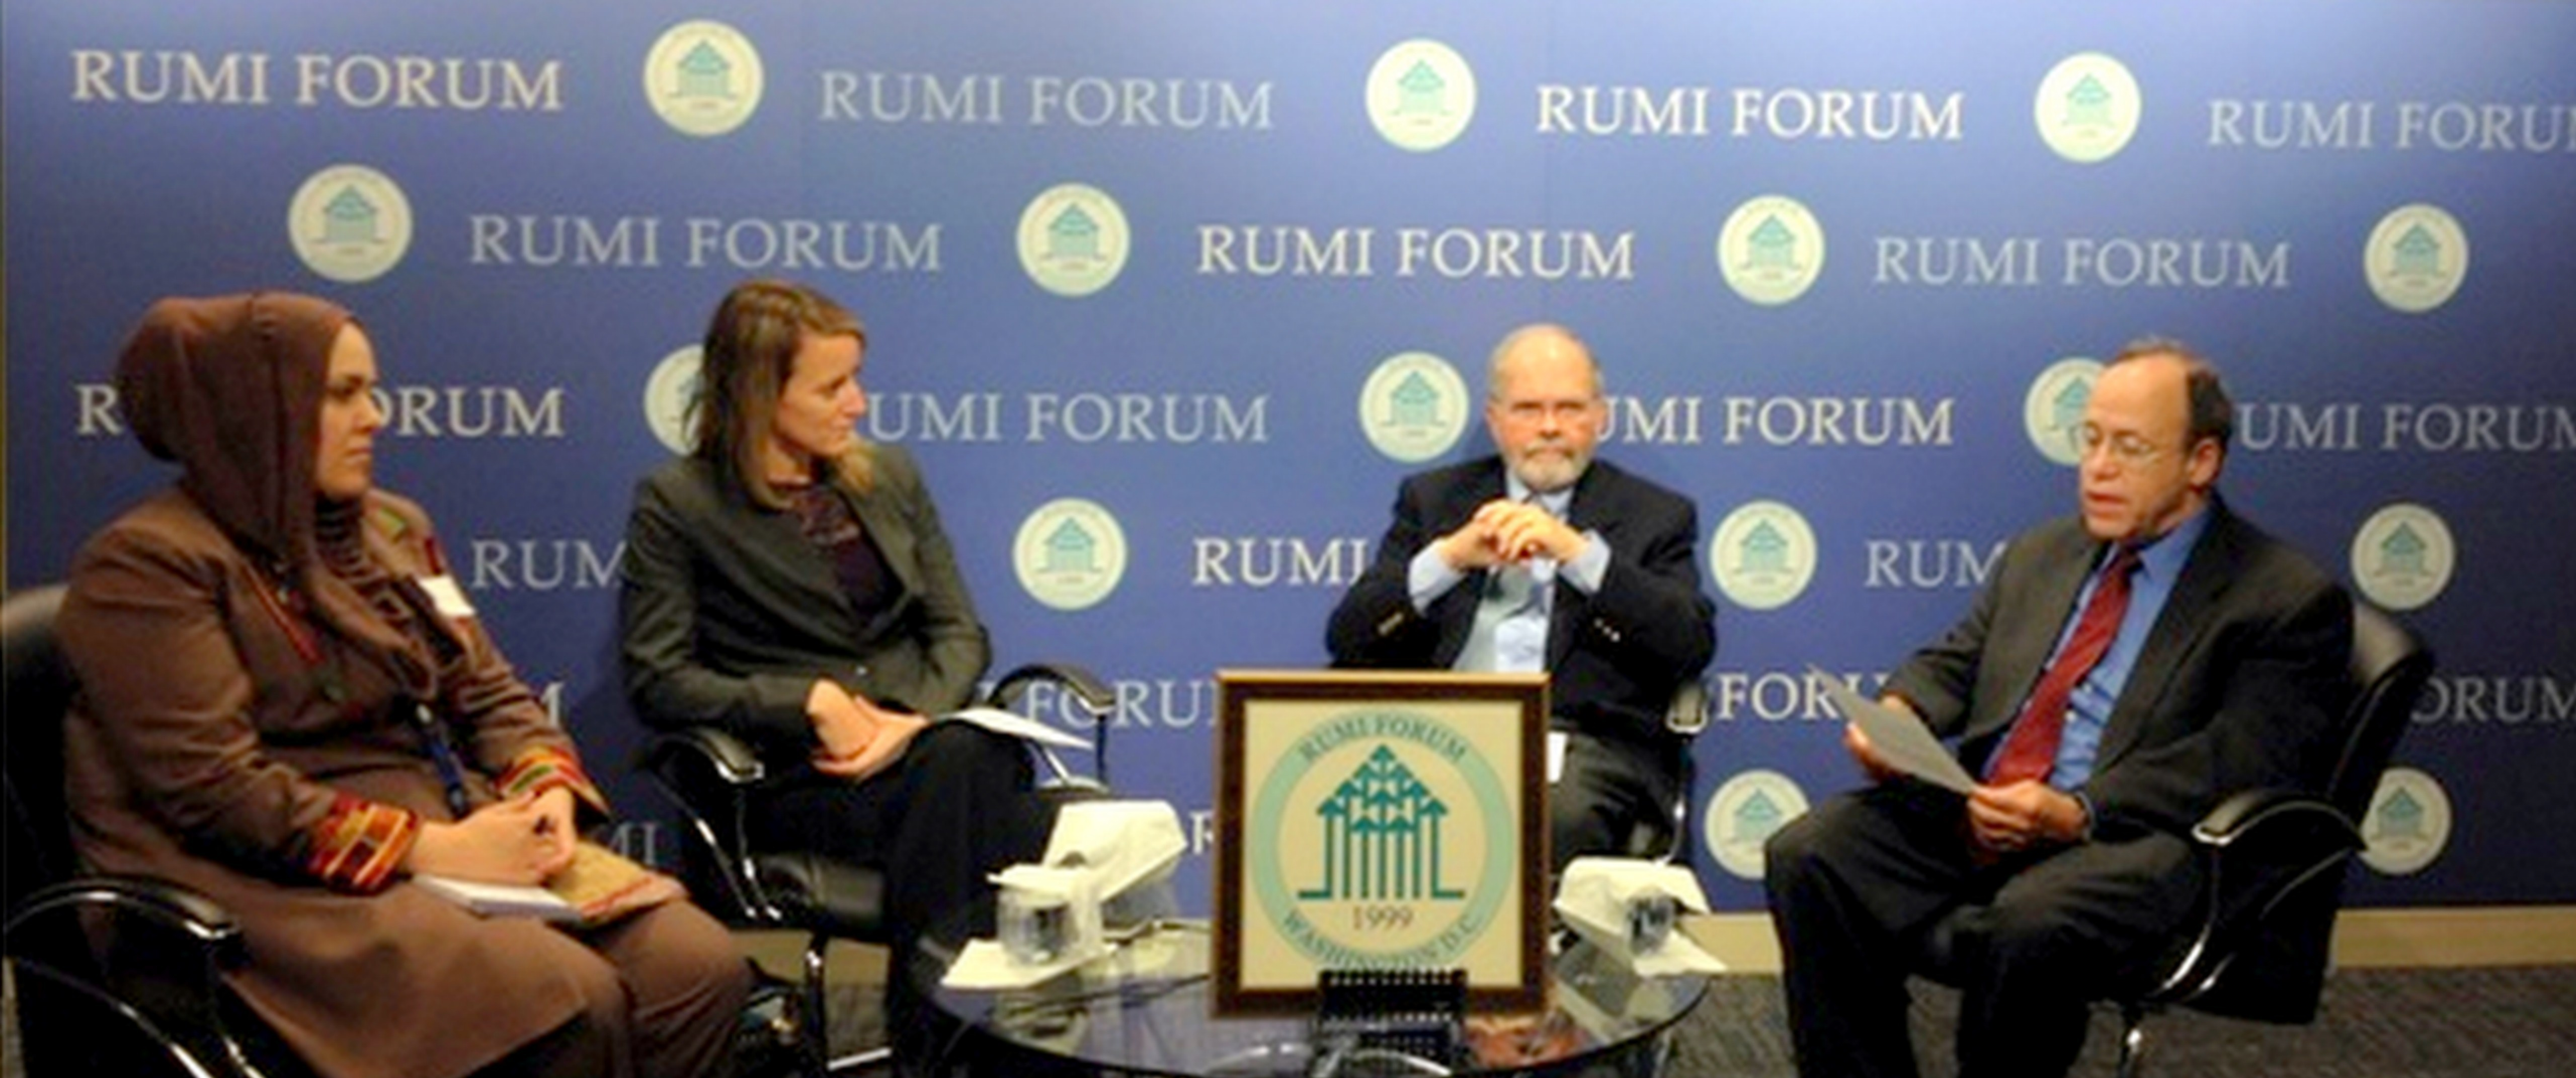 USIP's David Smock, Susan Hayward and Palwasaha Kakar talked on religious peacebuilding on Tuesday, September 23, 2014. Marc Gopin moderated.